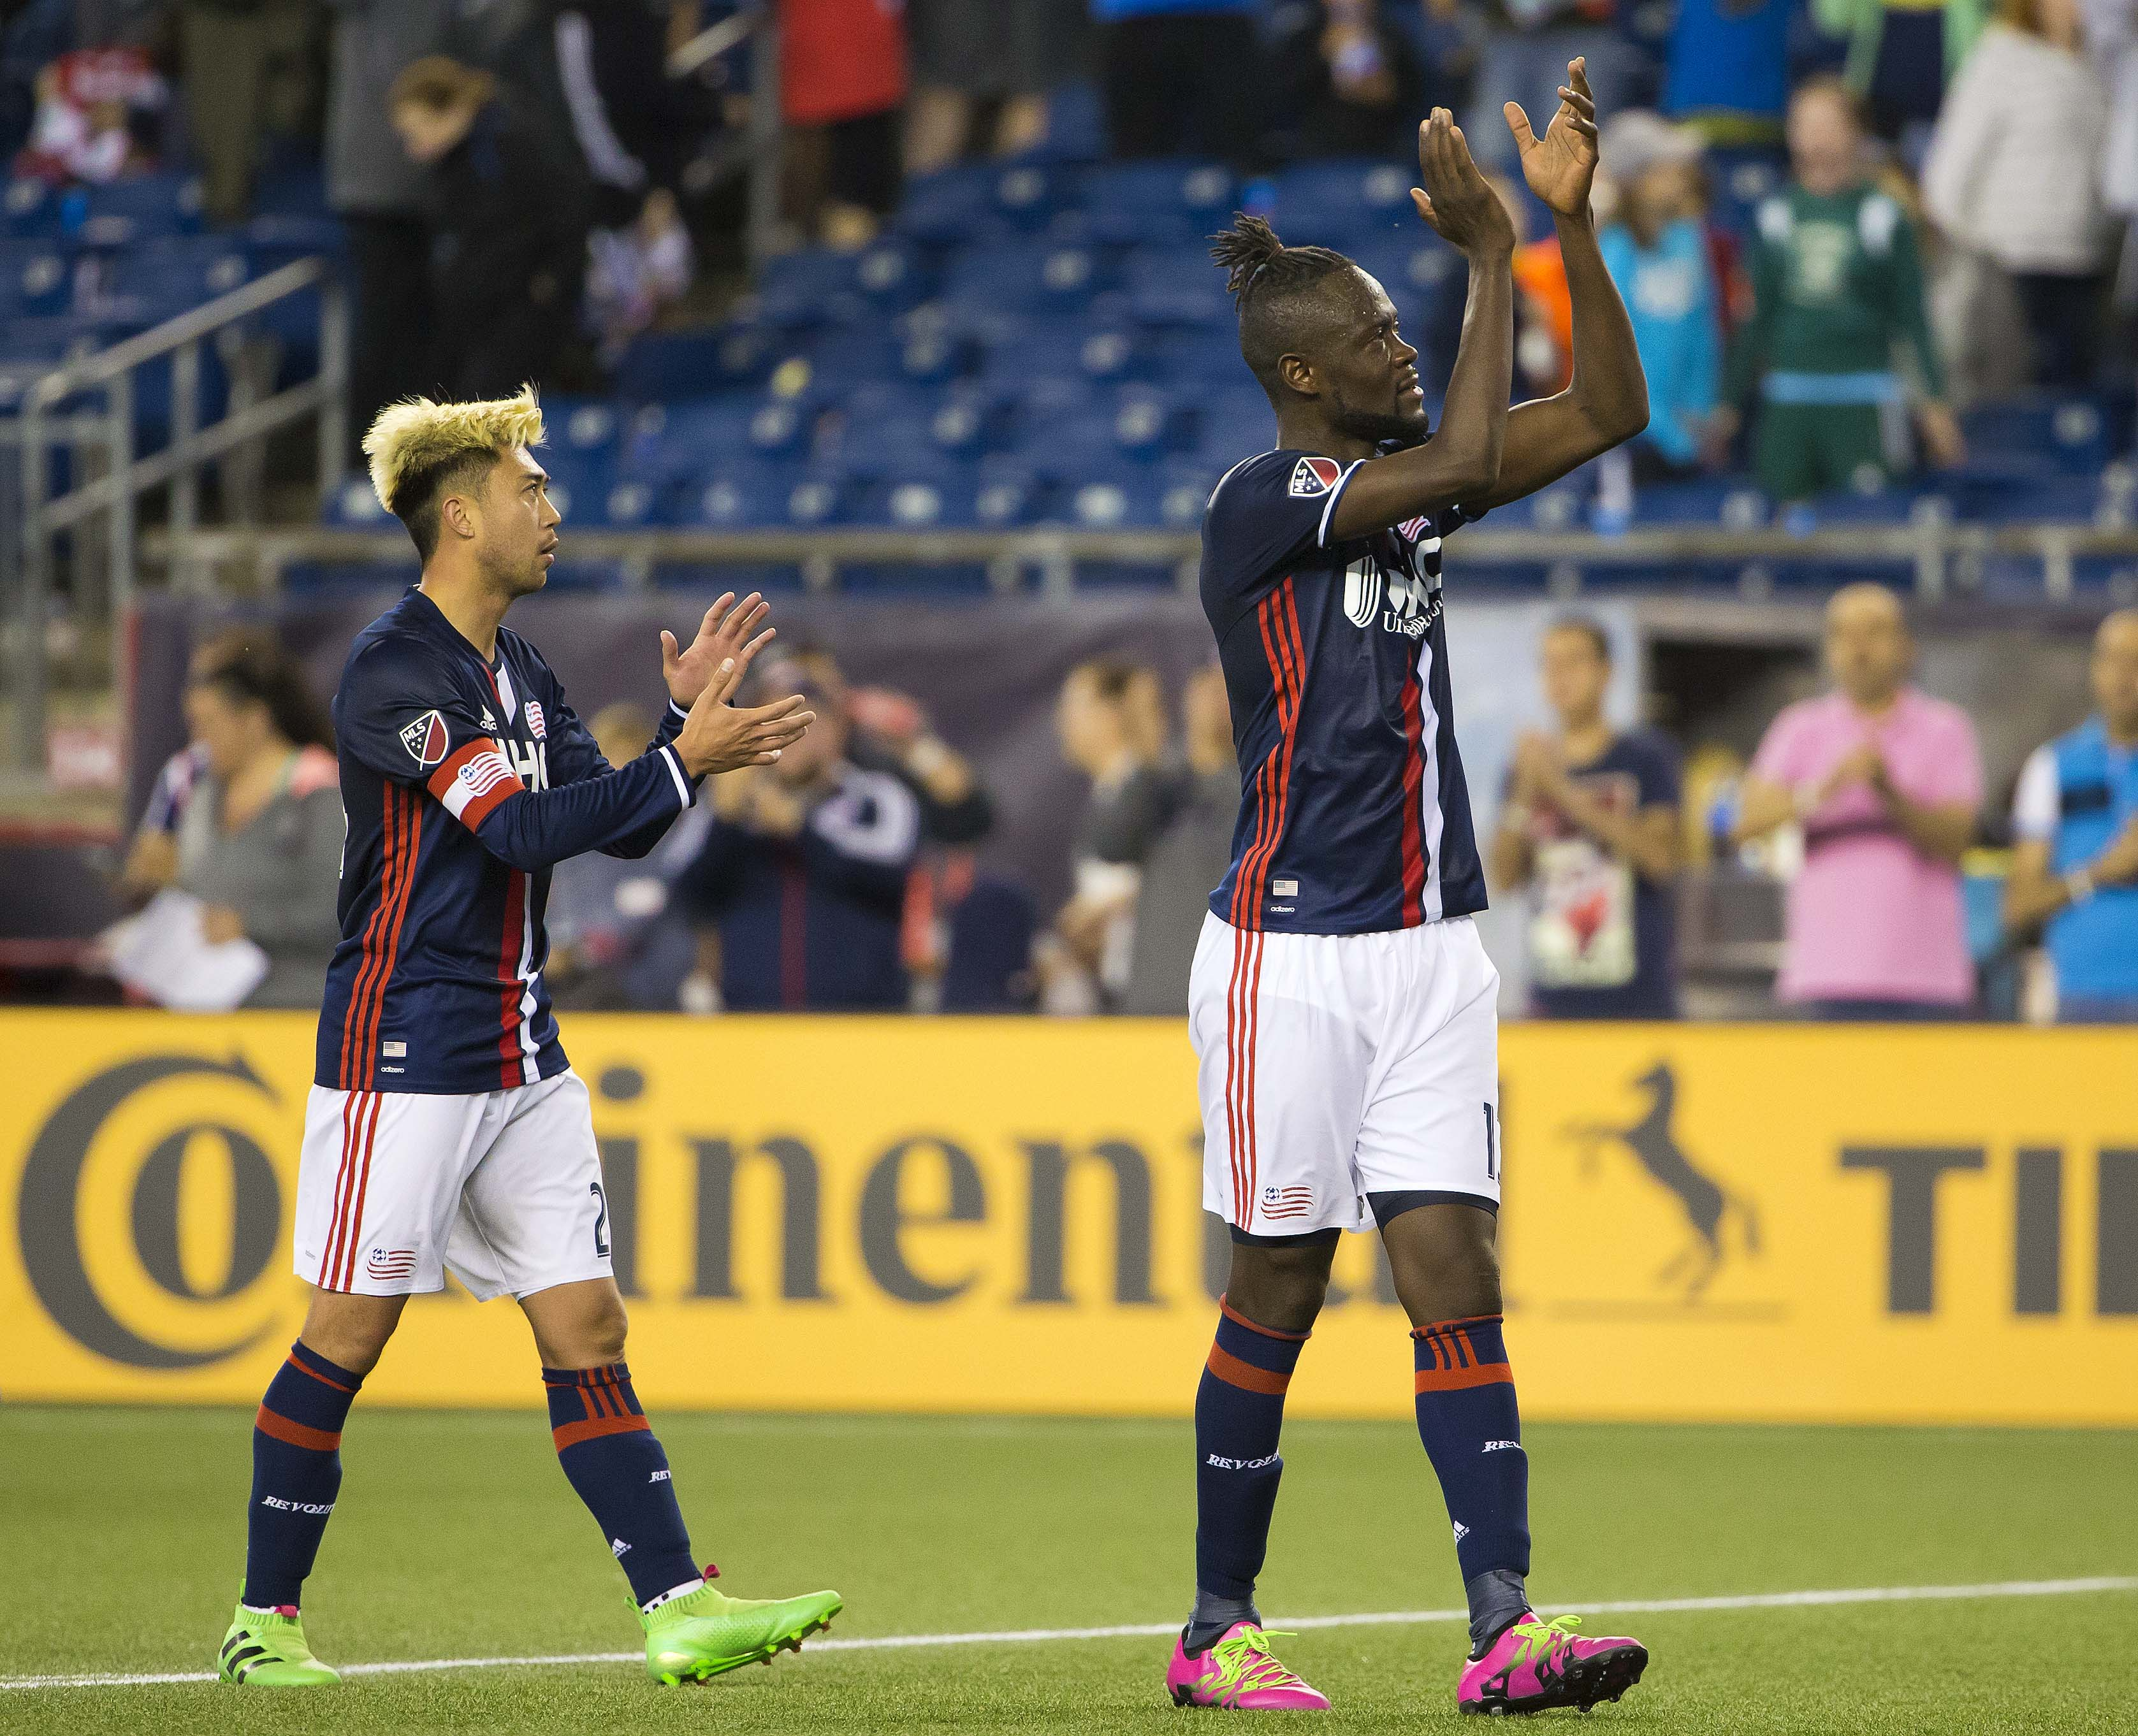 Kei Kamara didn't get on the score sheet, but showed his class by pestering the Fire back line.